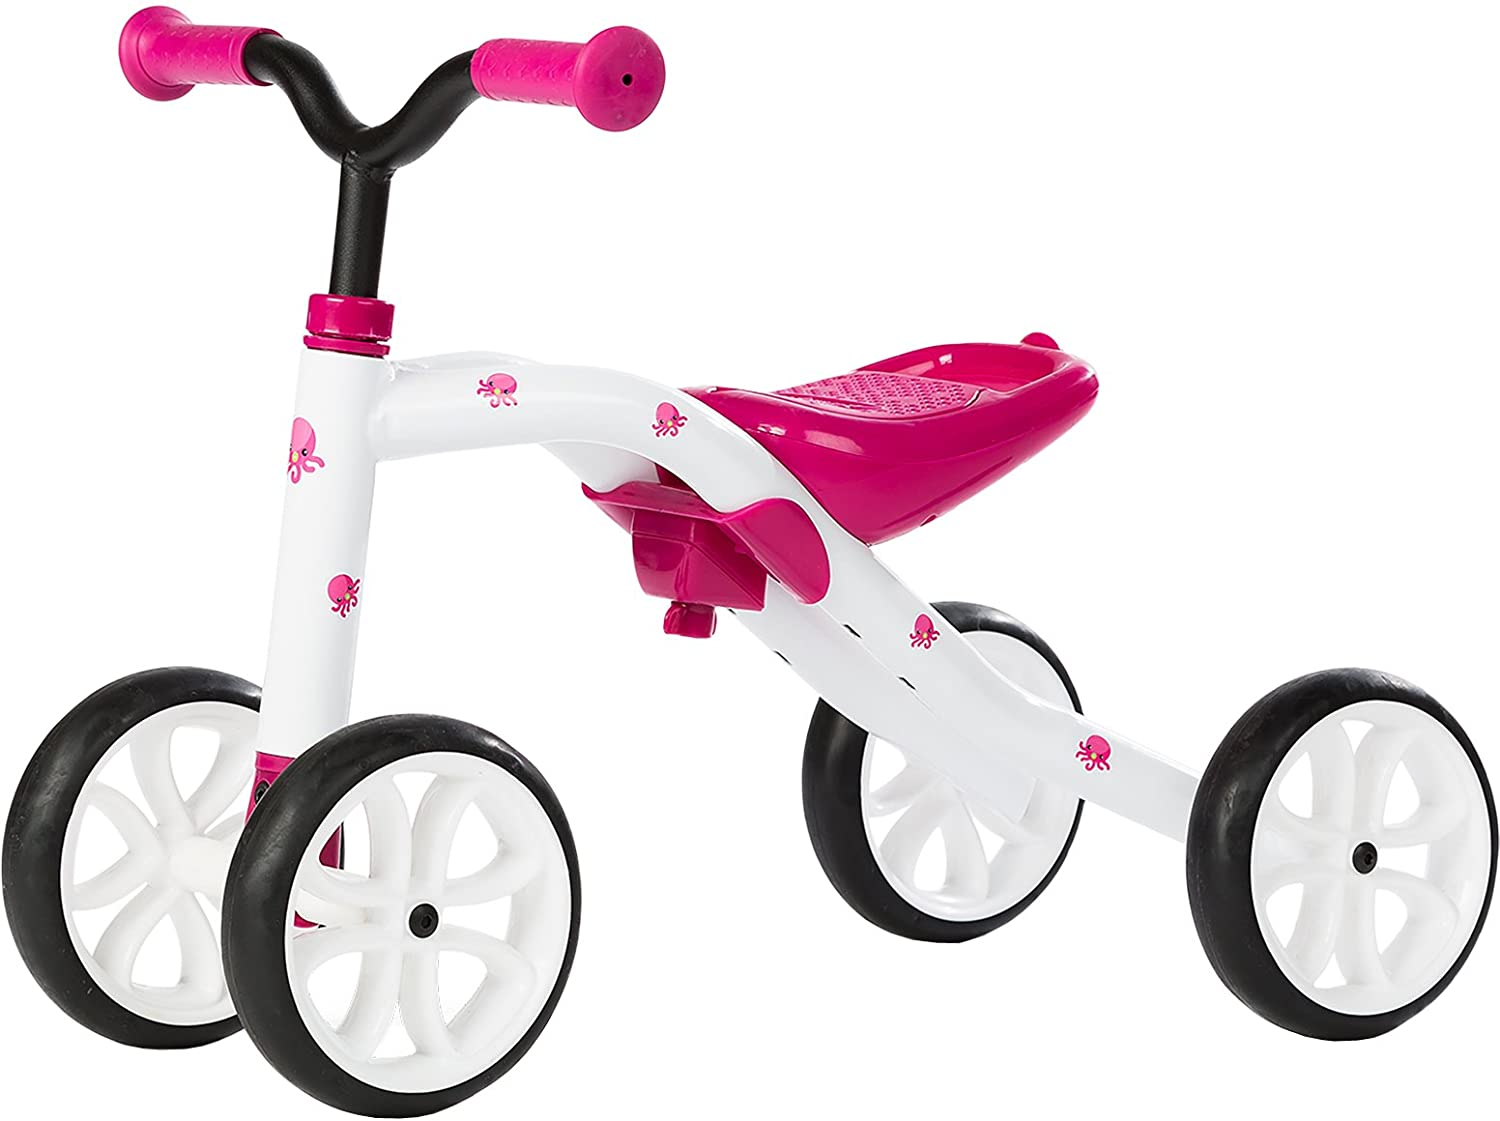 Chillafish QUADIE: 4-Wheeler Grow-with-Me Ride-On Quad, Pink LTD NWS Europe The Chillafish Company NV CPQD01PIN